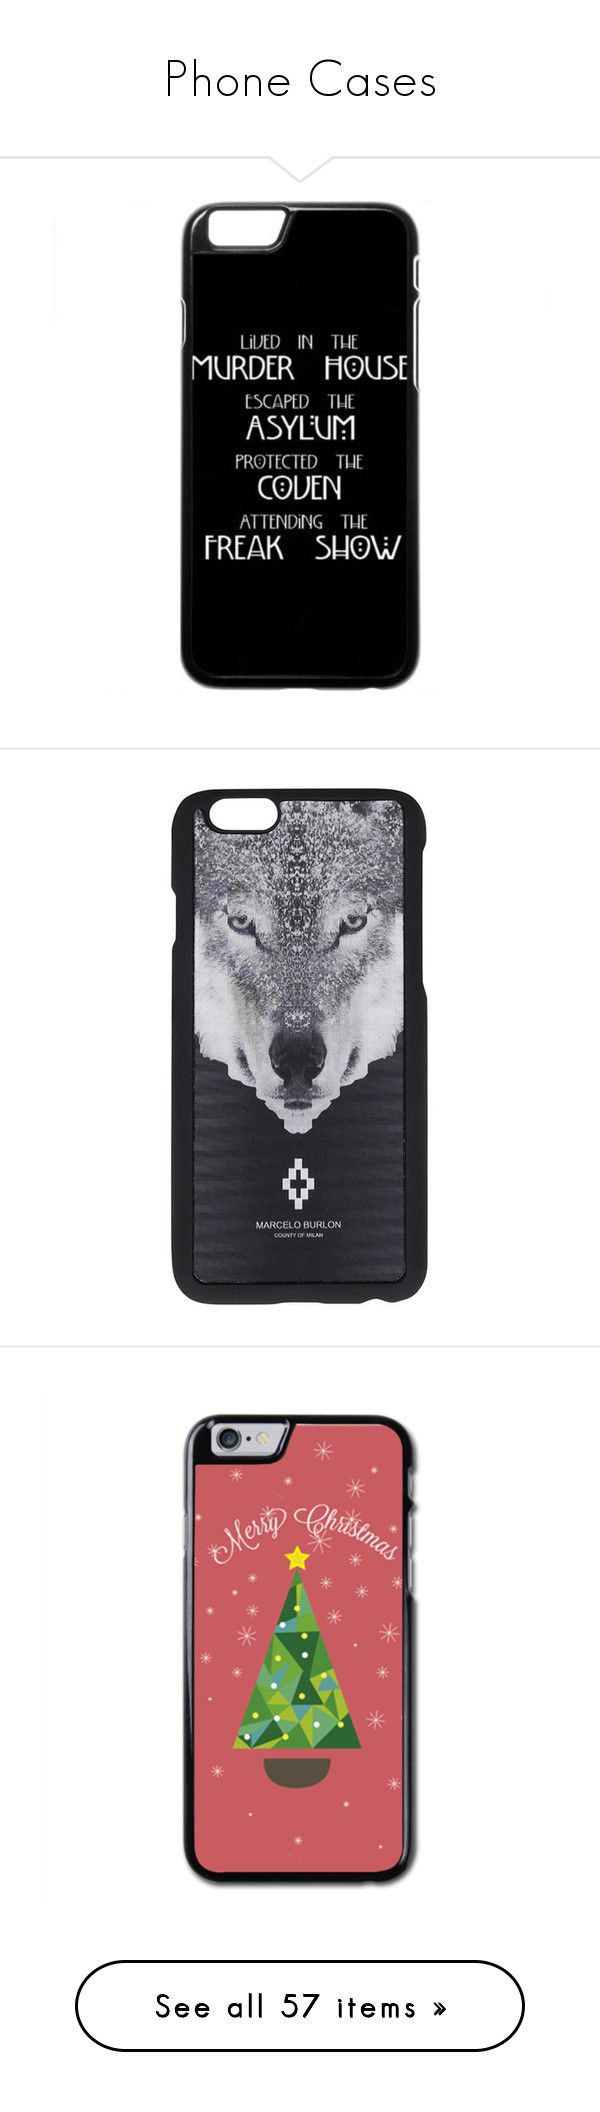 """""""Phone Cases"""" by barryallen269 on Polyvore featuring accessories, tech accessories, men's fashion, men's accessories, men's tech accessories, phone cases, men, nero, phone and phones"""